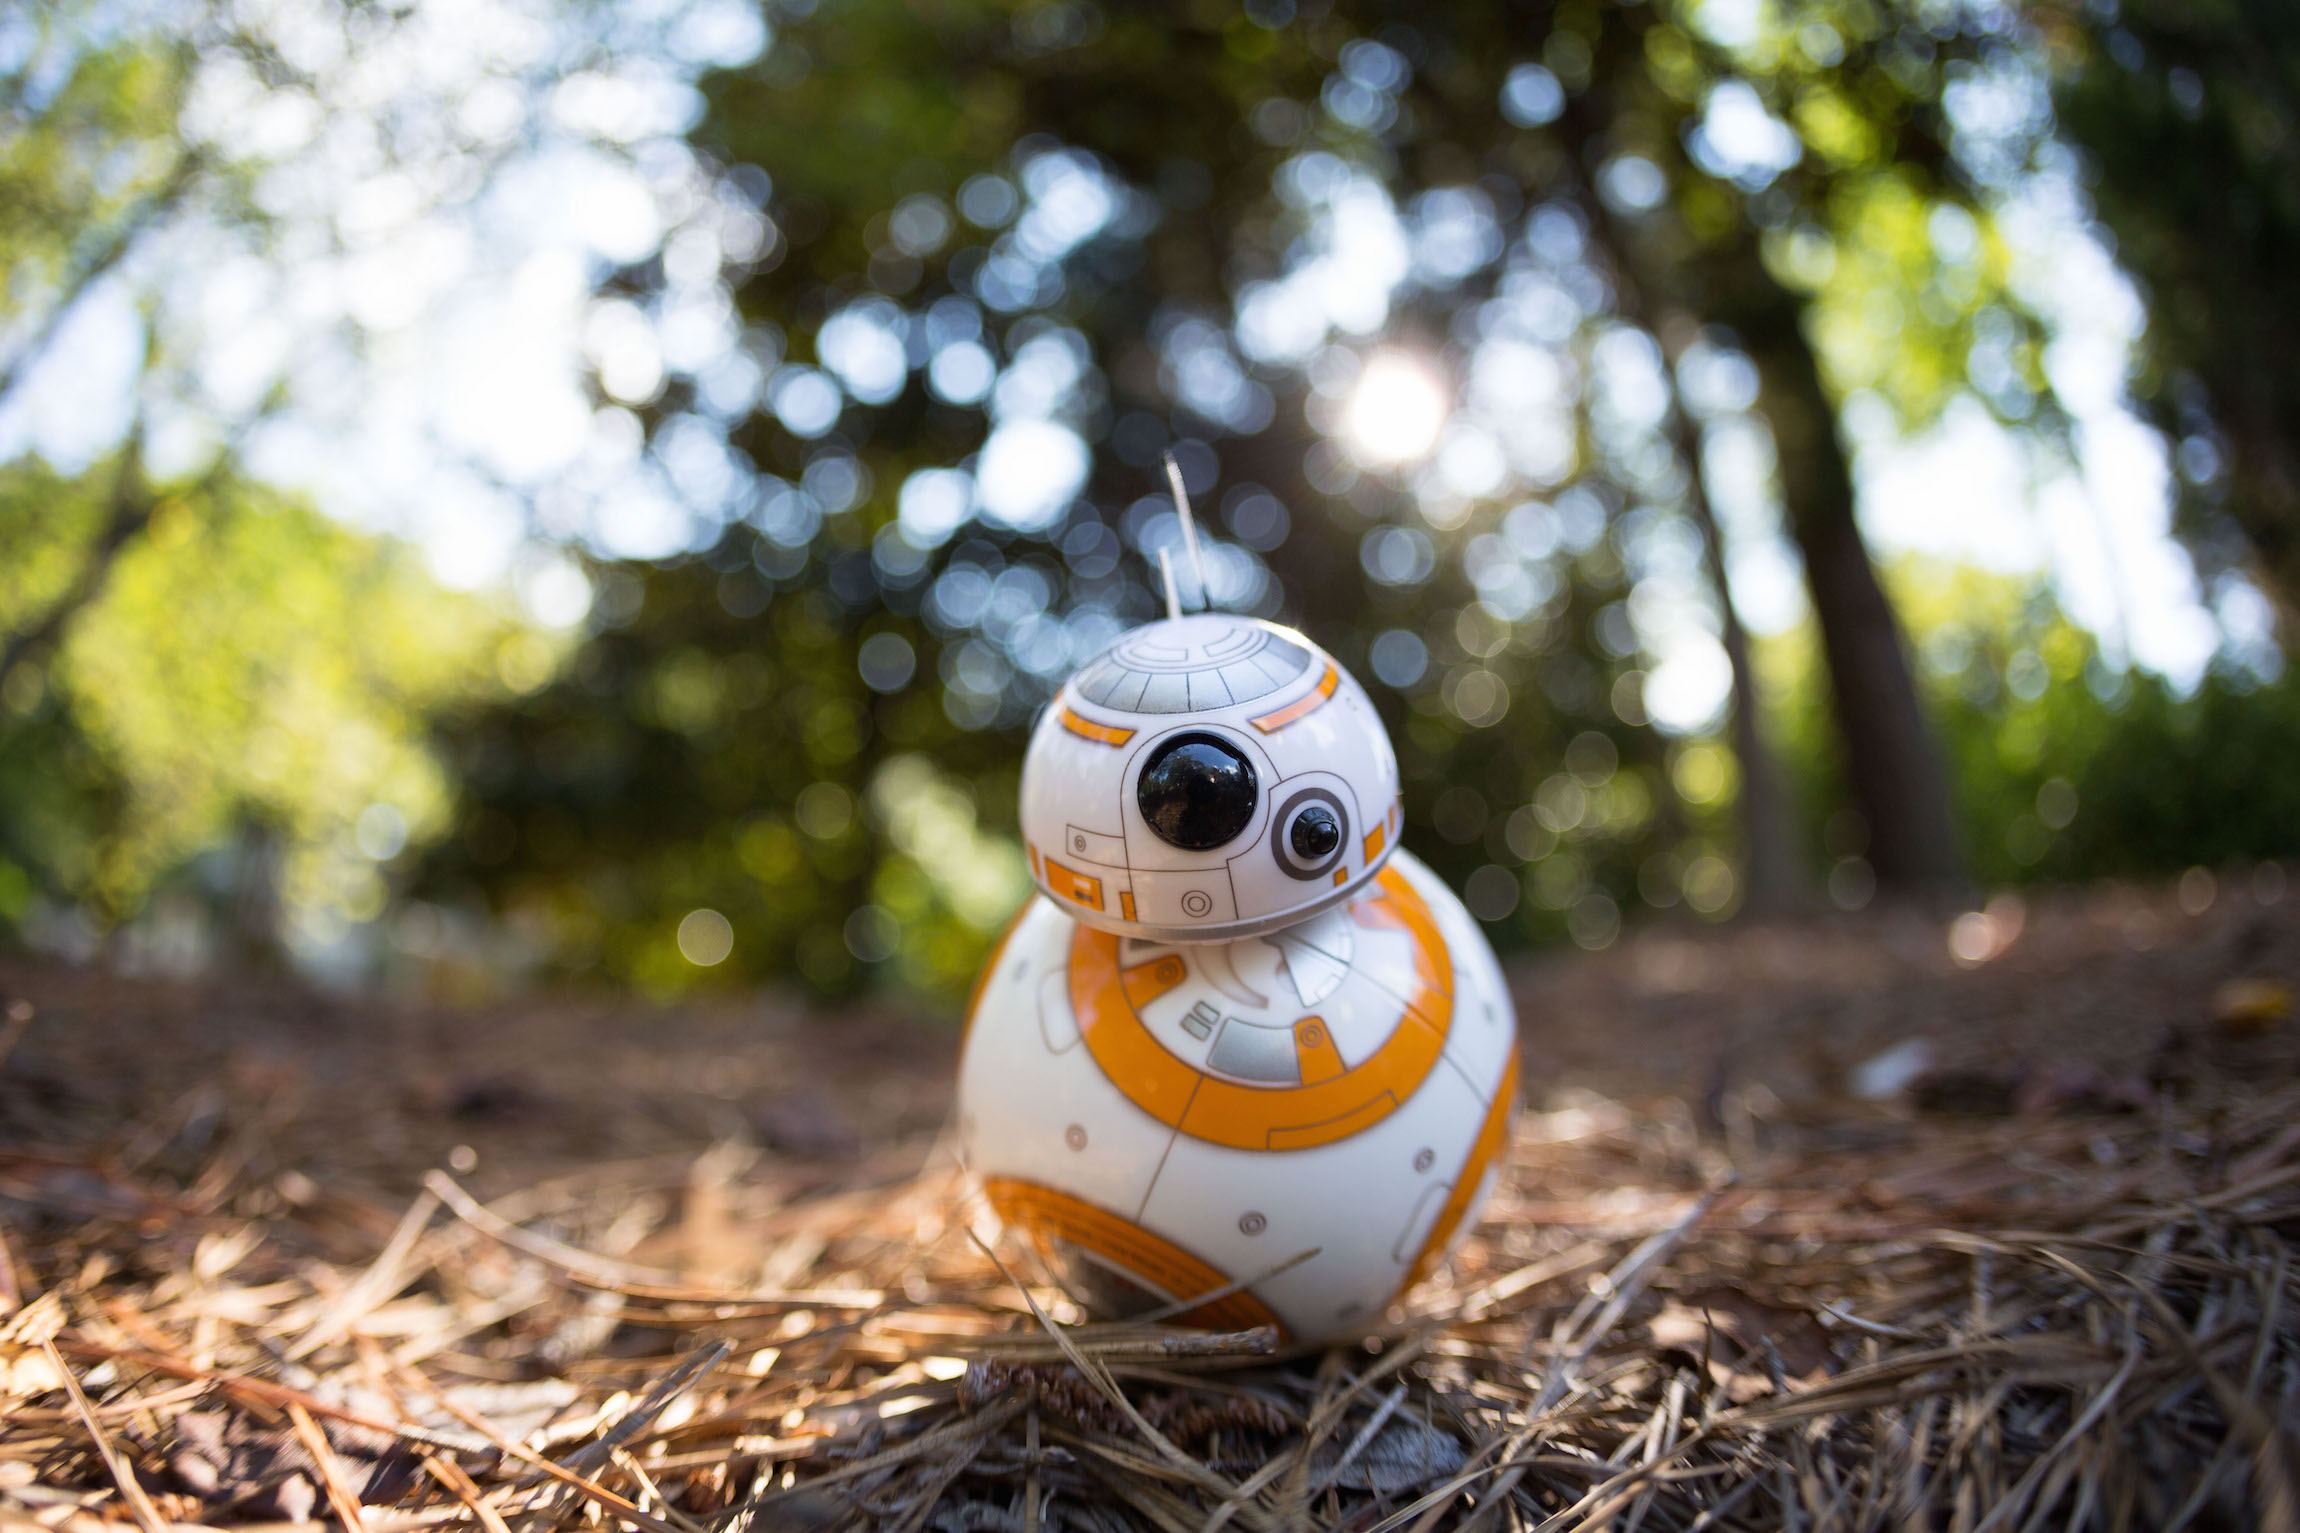 Sphero BB-8 in the thicket